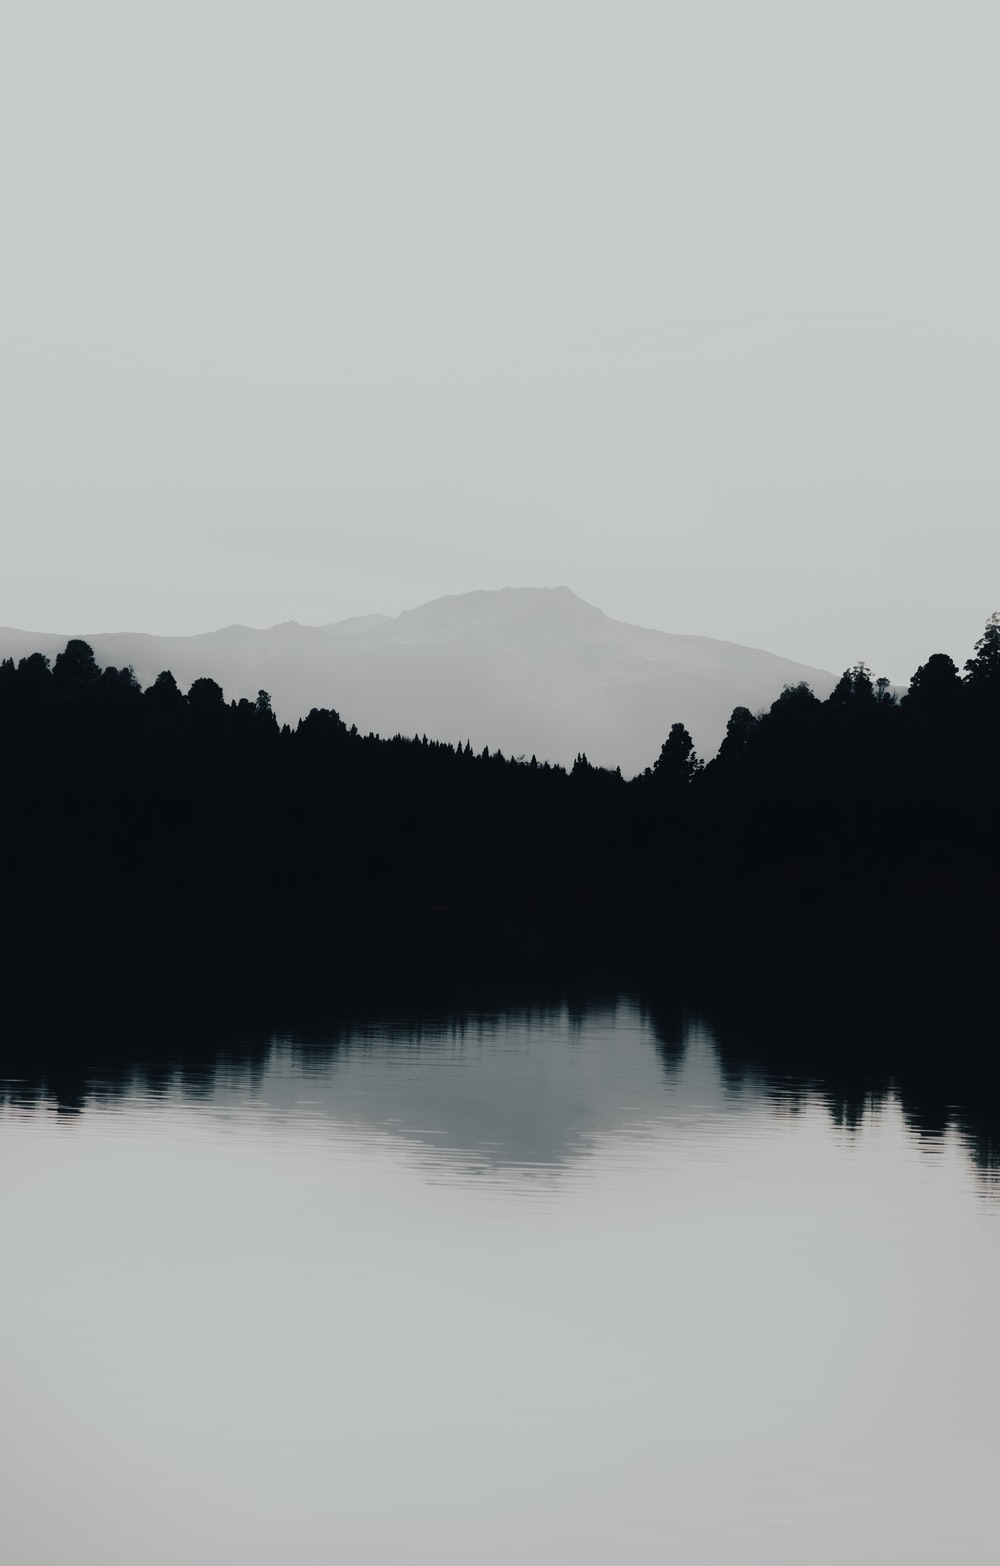 grayscale photography of body of water viewing mountain